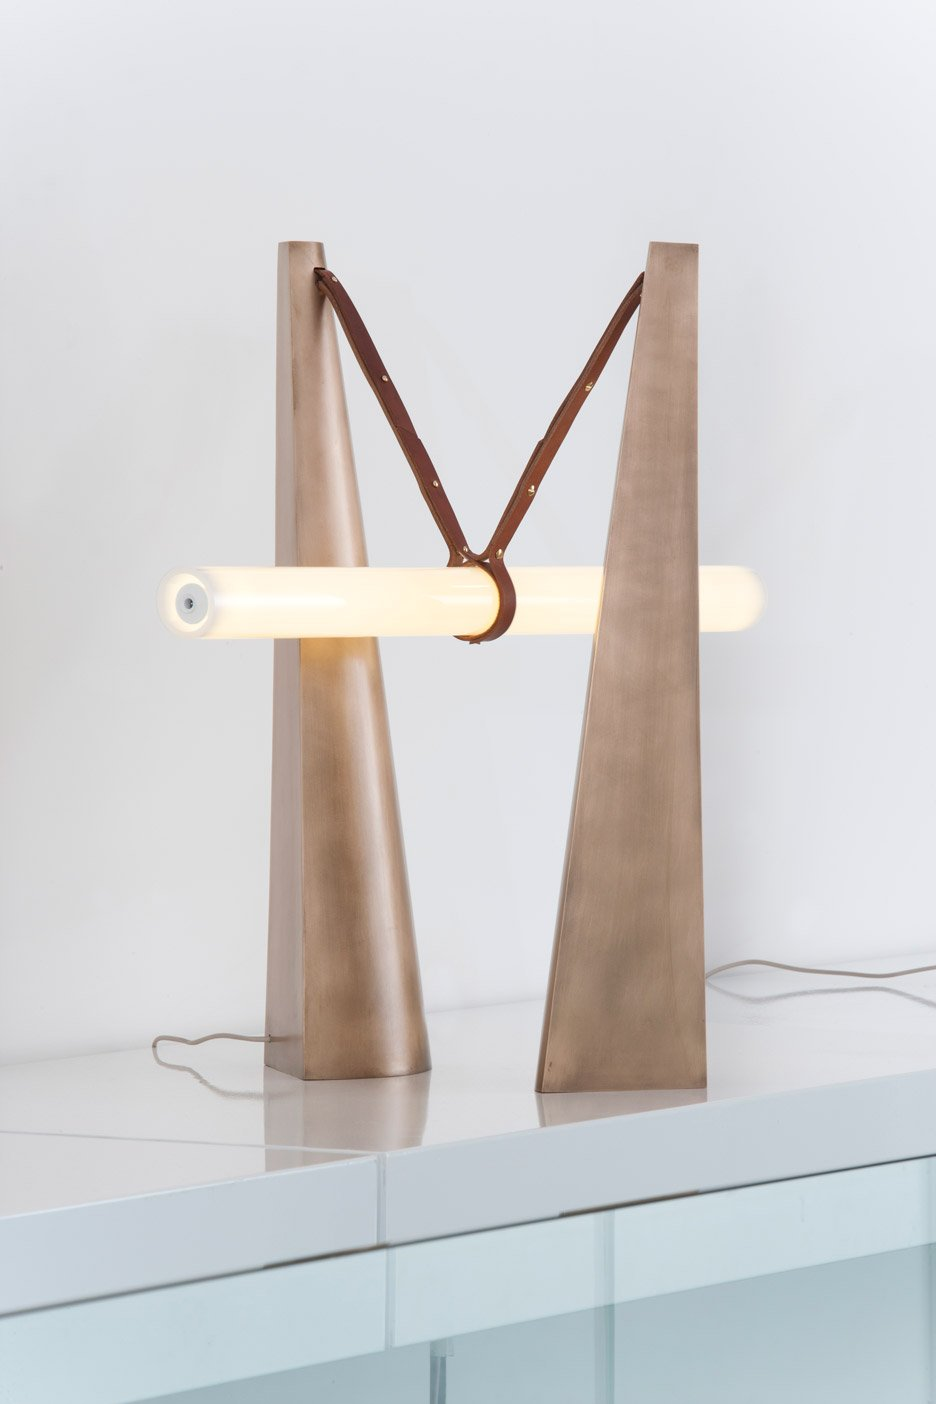 Bec Brittain designs architectural looking lamps for the Patrick Parrish Gallery in New York